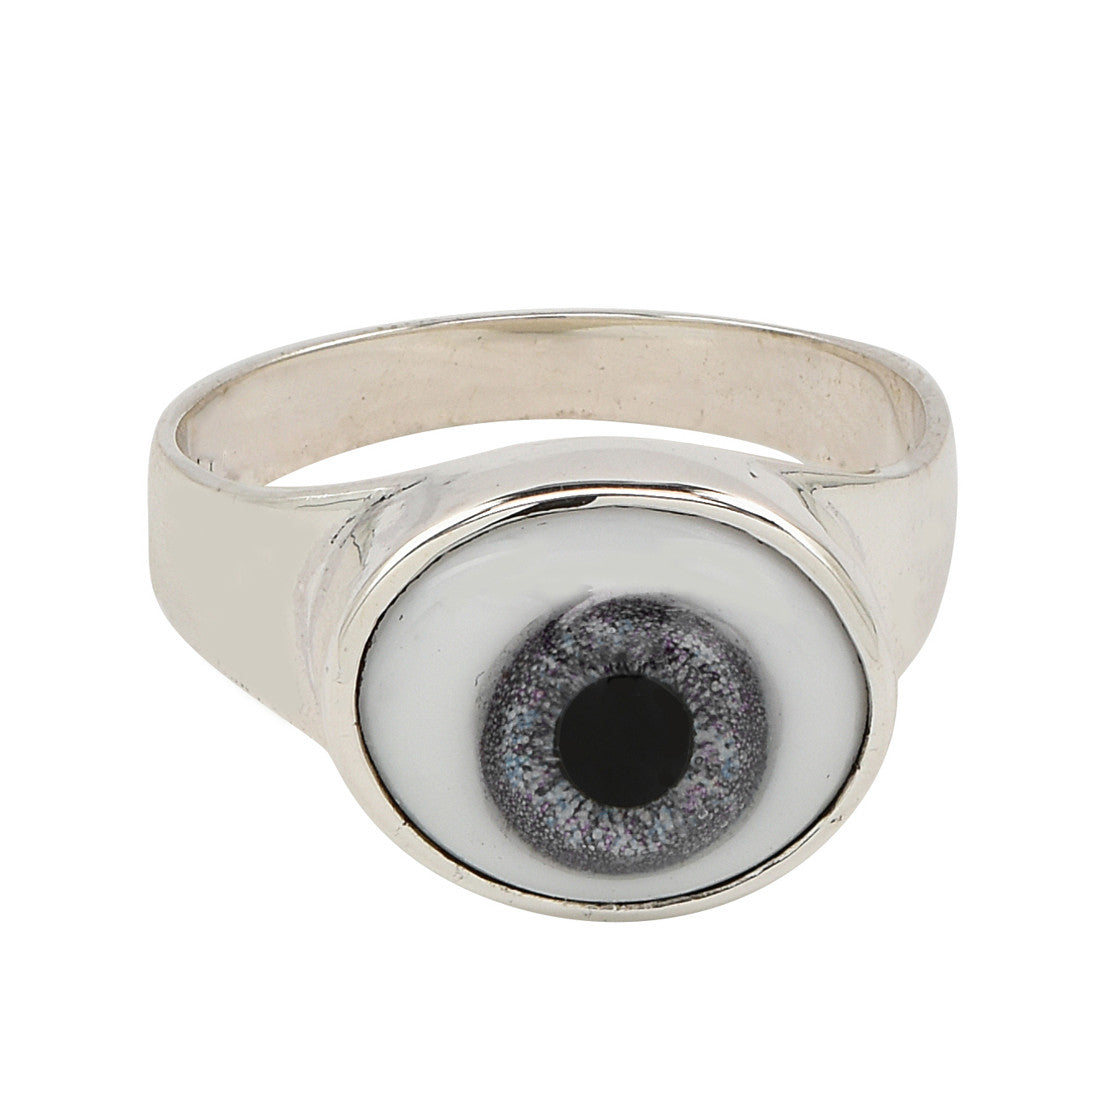 silver eye against evil ring (slate) - René Habie